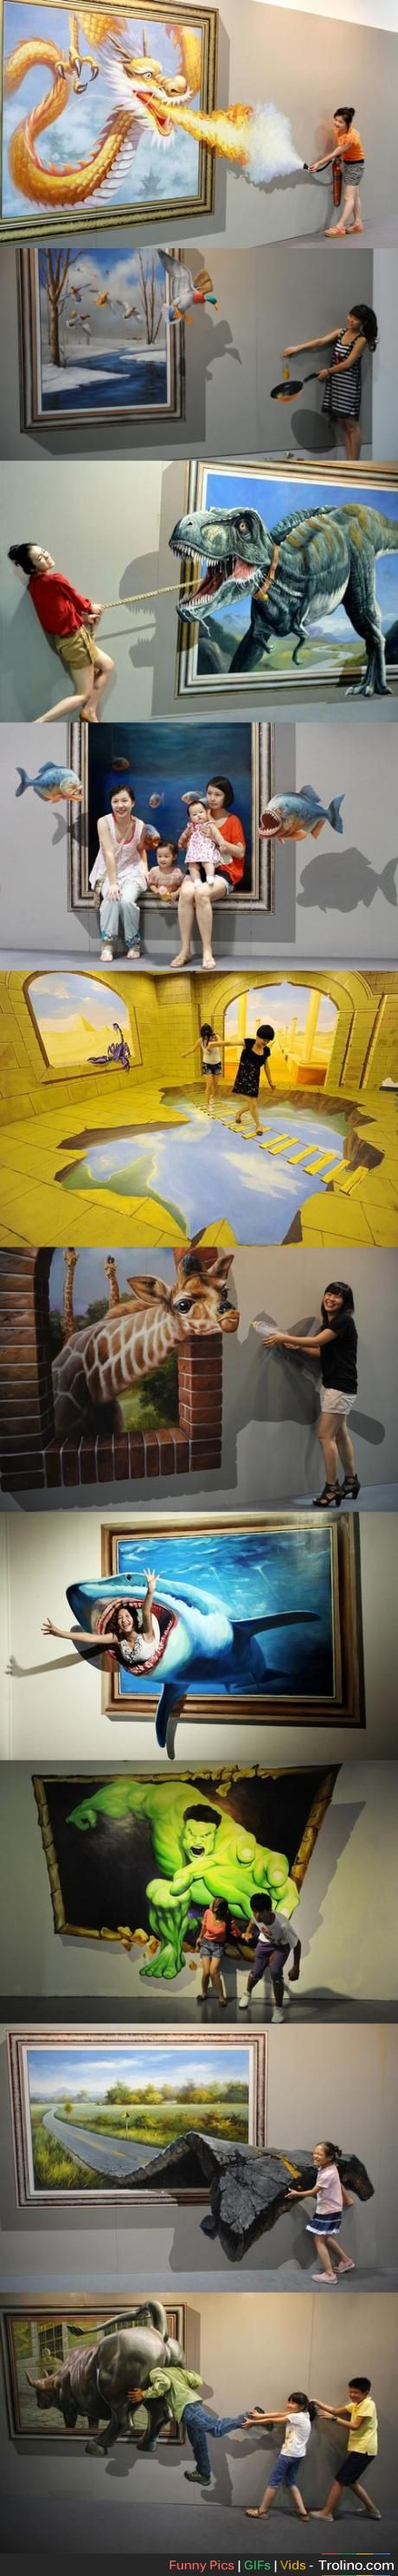 If this is the trick-eye museum in South Korea then I'm going there in a few days :P